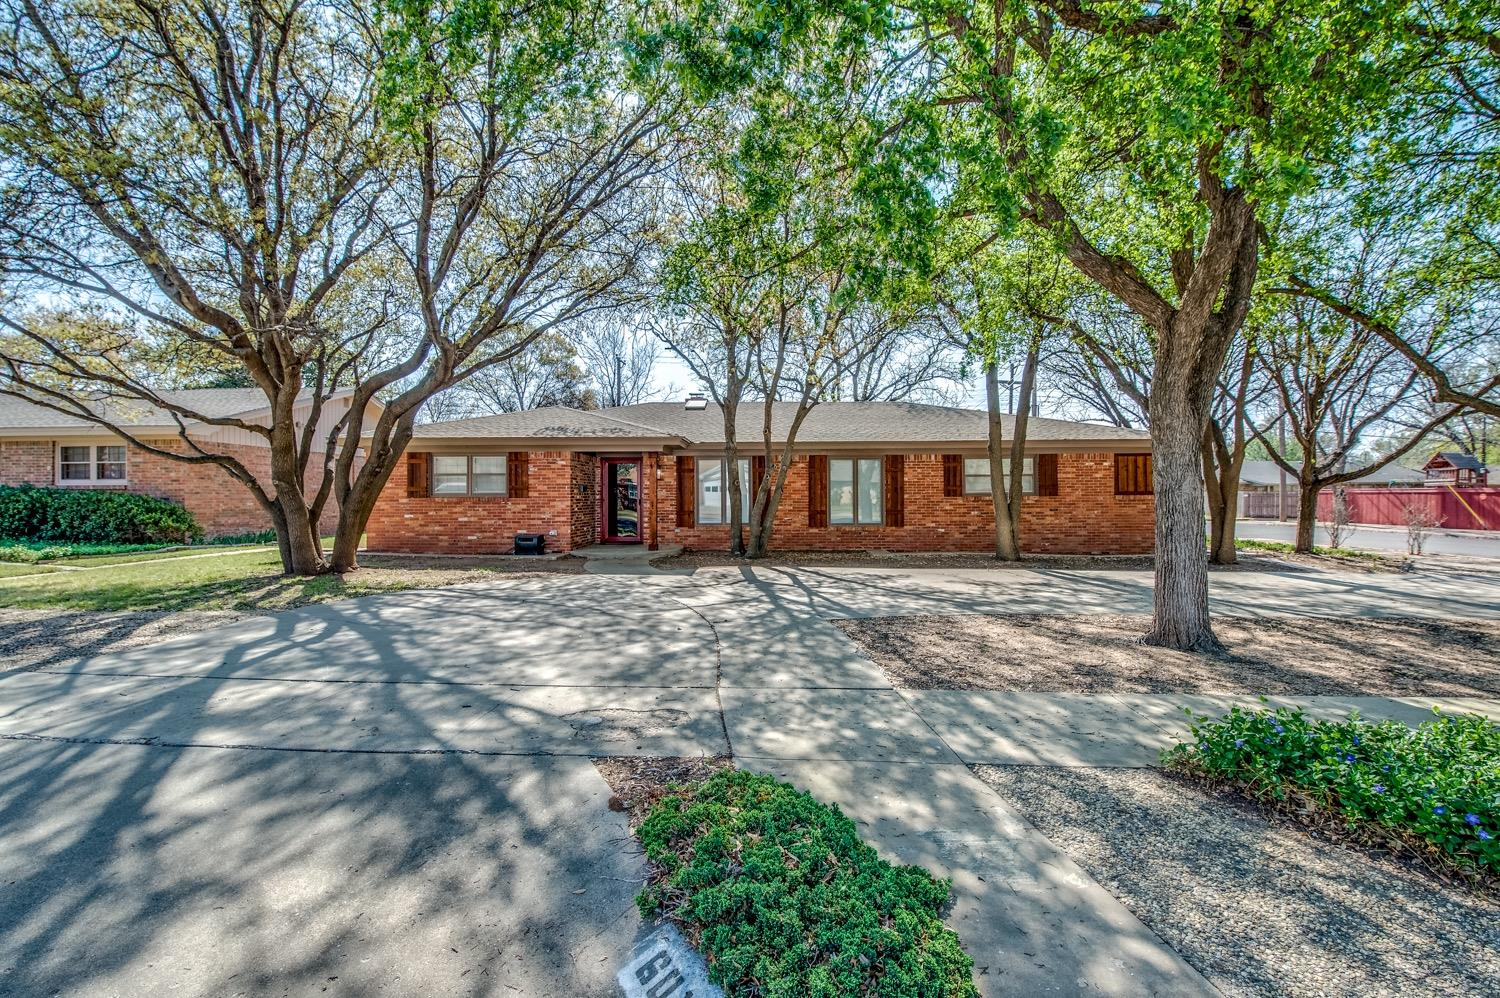 6019 Oxford Avenue, Lubbock in Lubbock County, TX 79413 Home for Sale